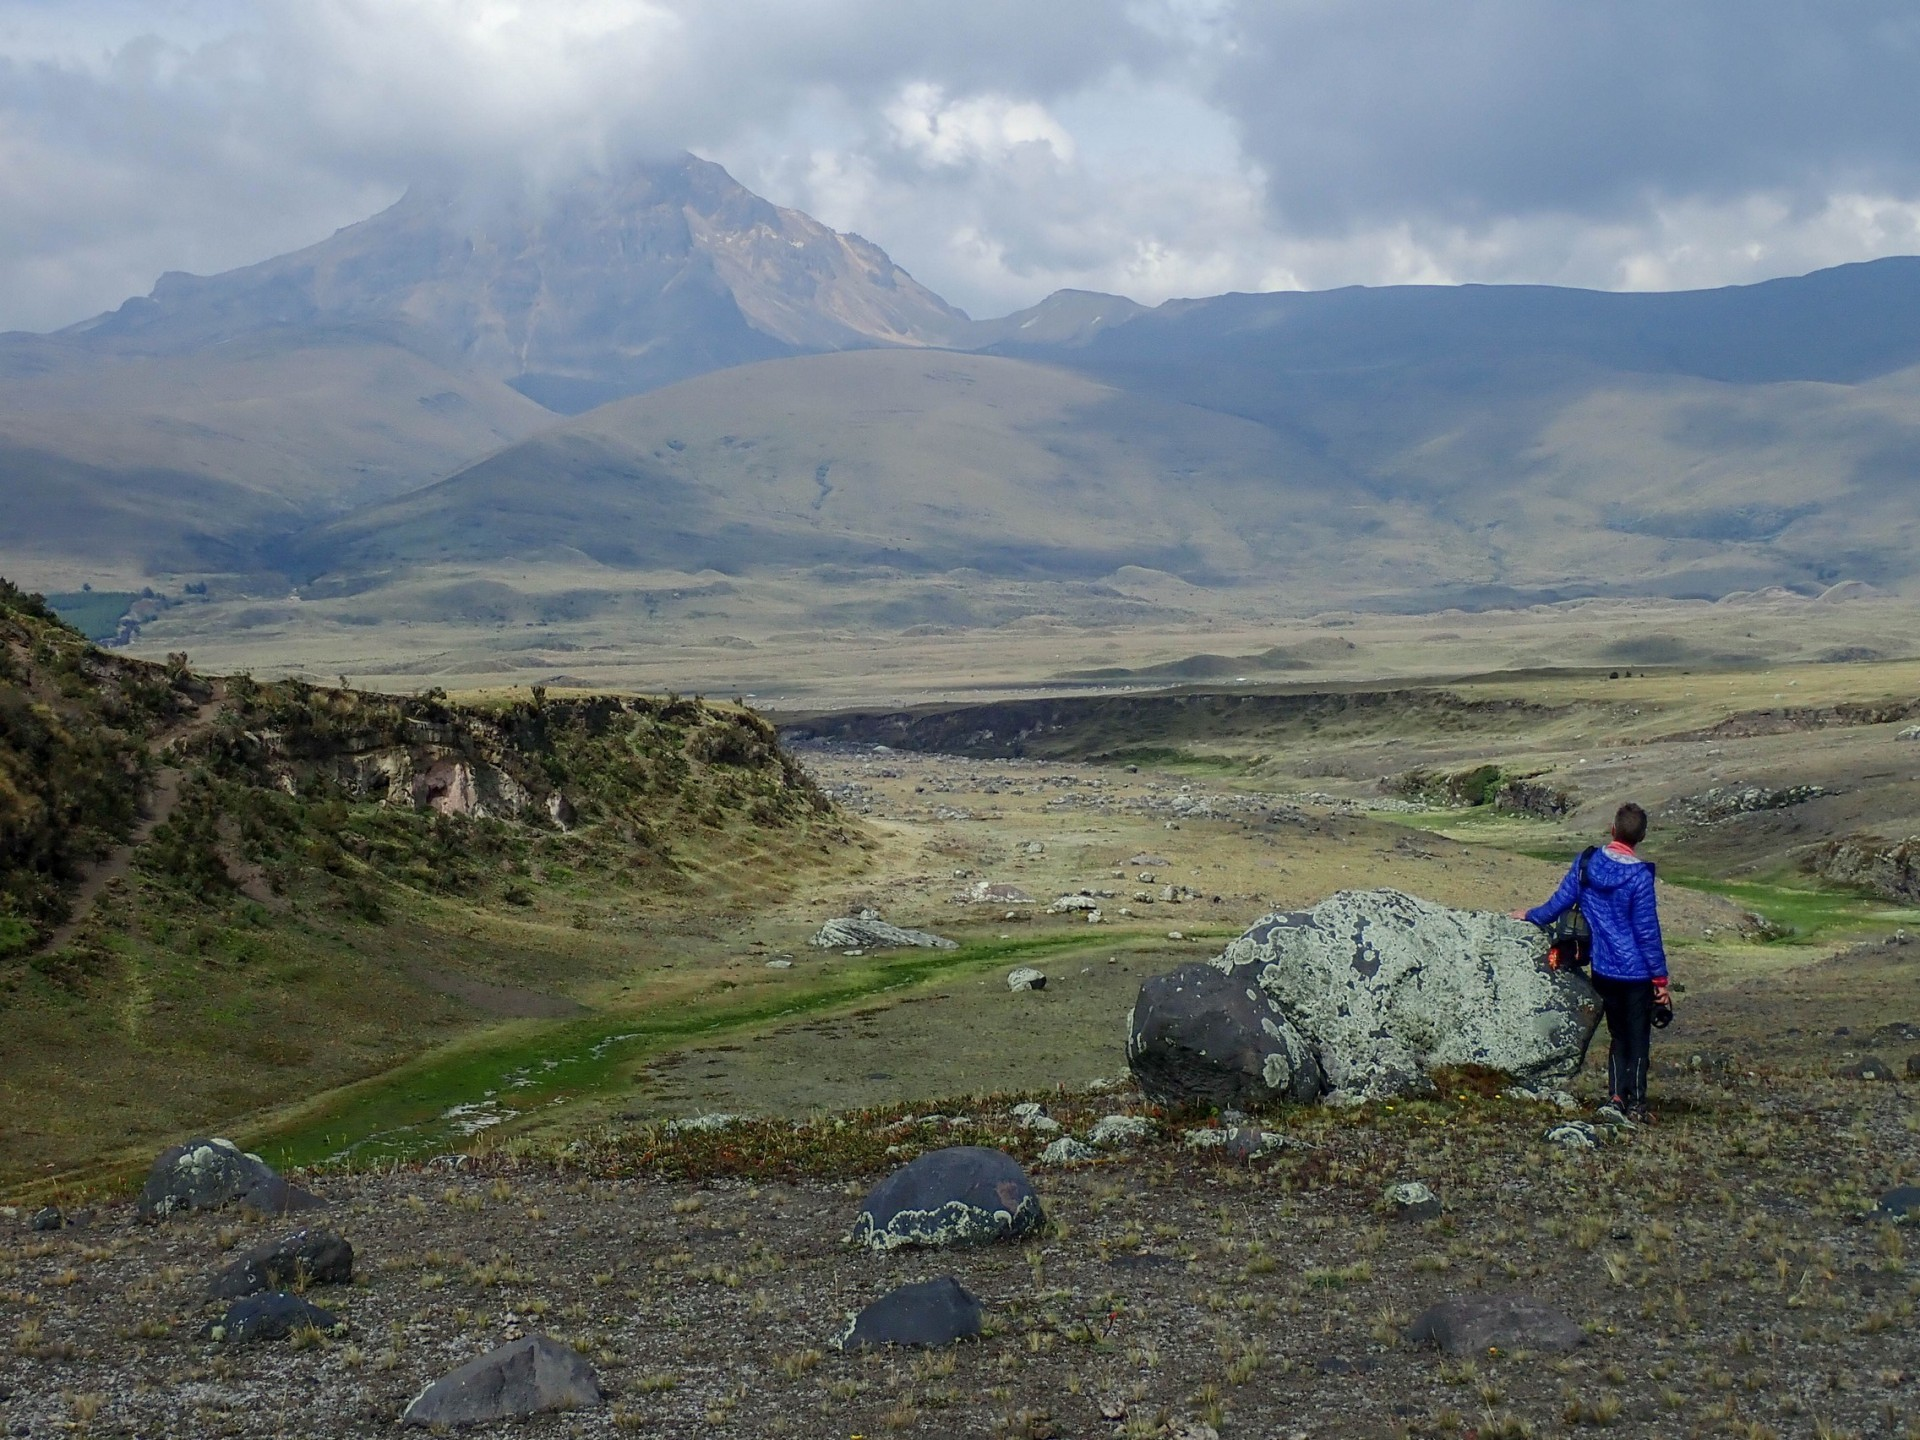 2018-10-13 Machachi_Tambopaxi Lodge-133